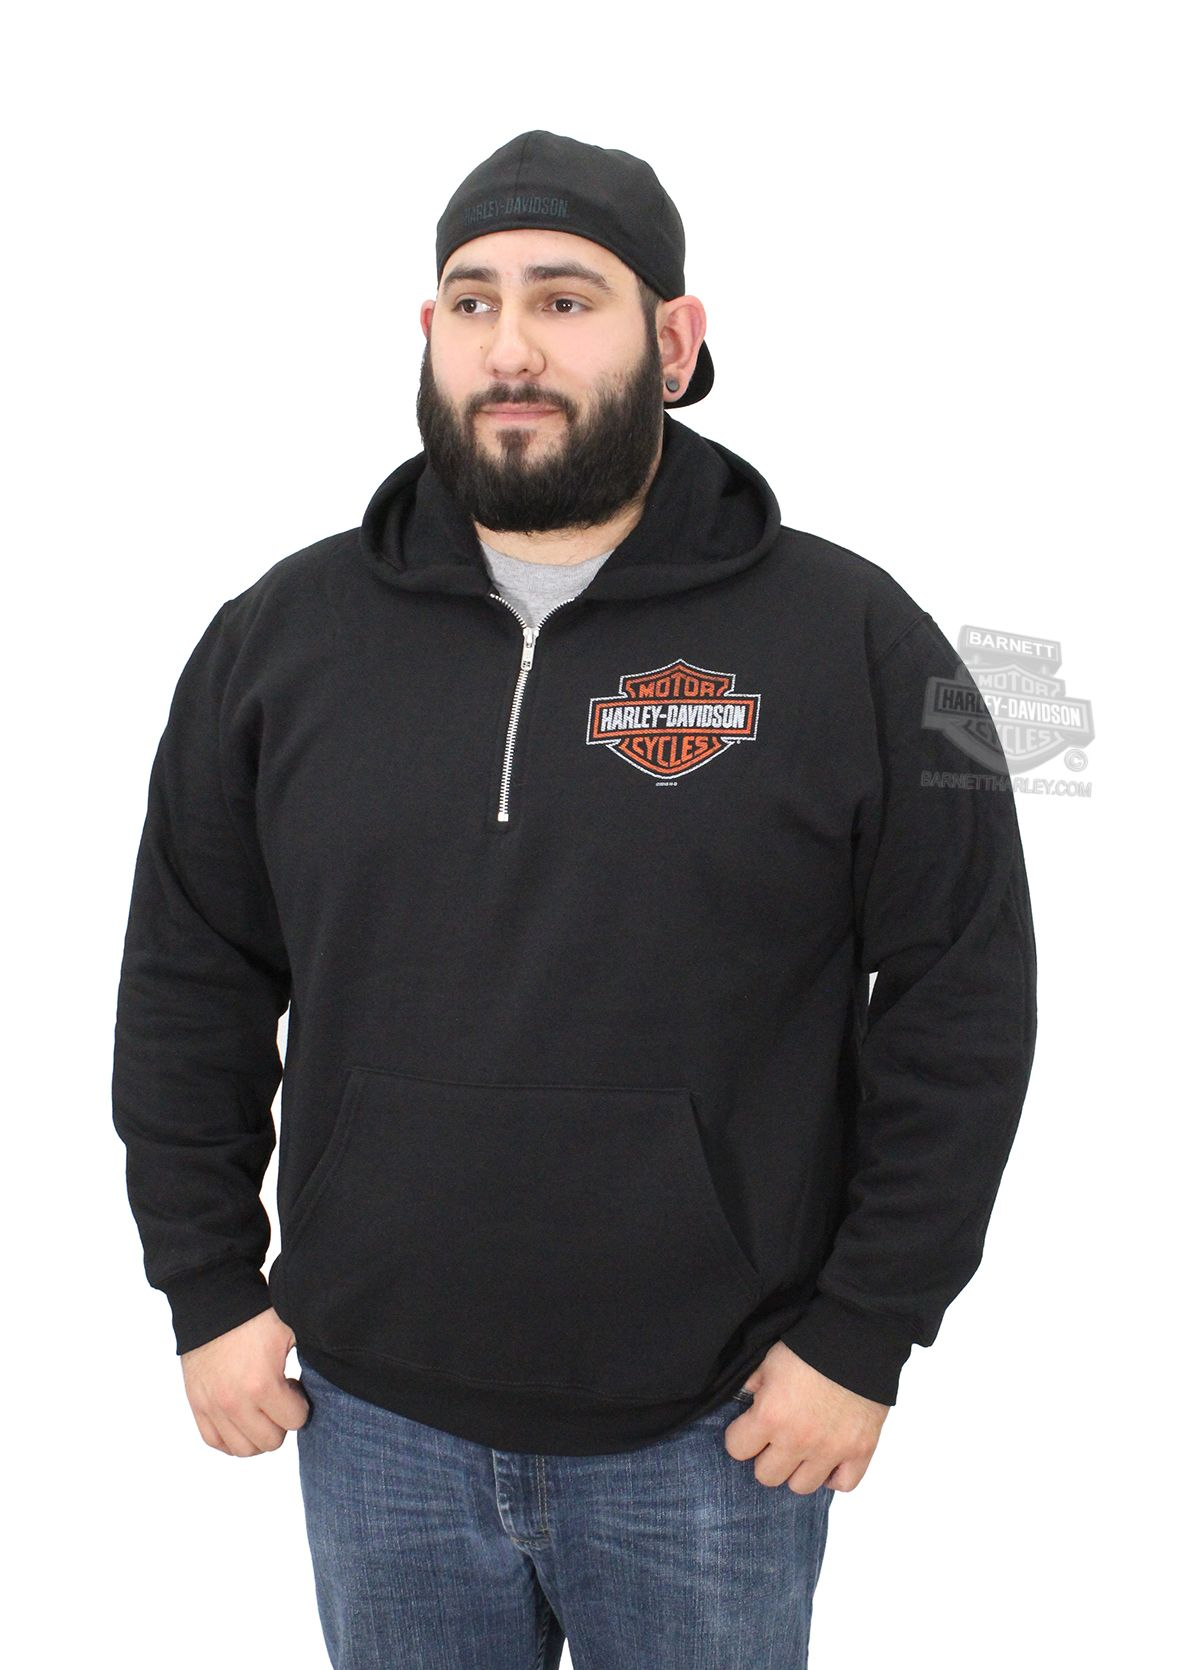 Harley-Davidson® | 5H35-HA91 | Harley-Davidson® Mens No RPM Gauge Distressed B&S 1/4-Zip Pullover Black Long Sleeve Hoodie